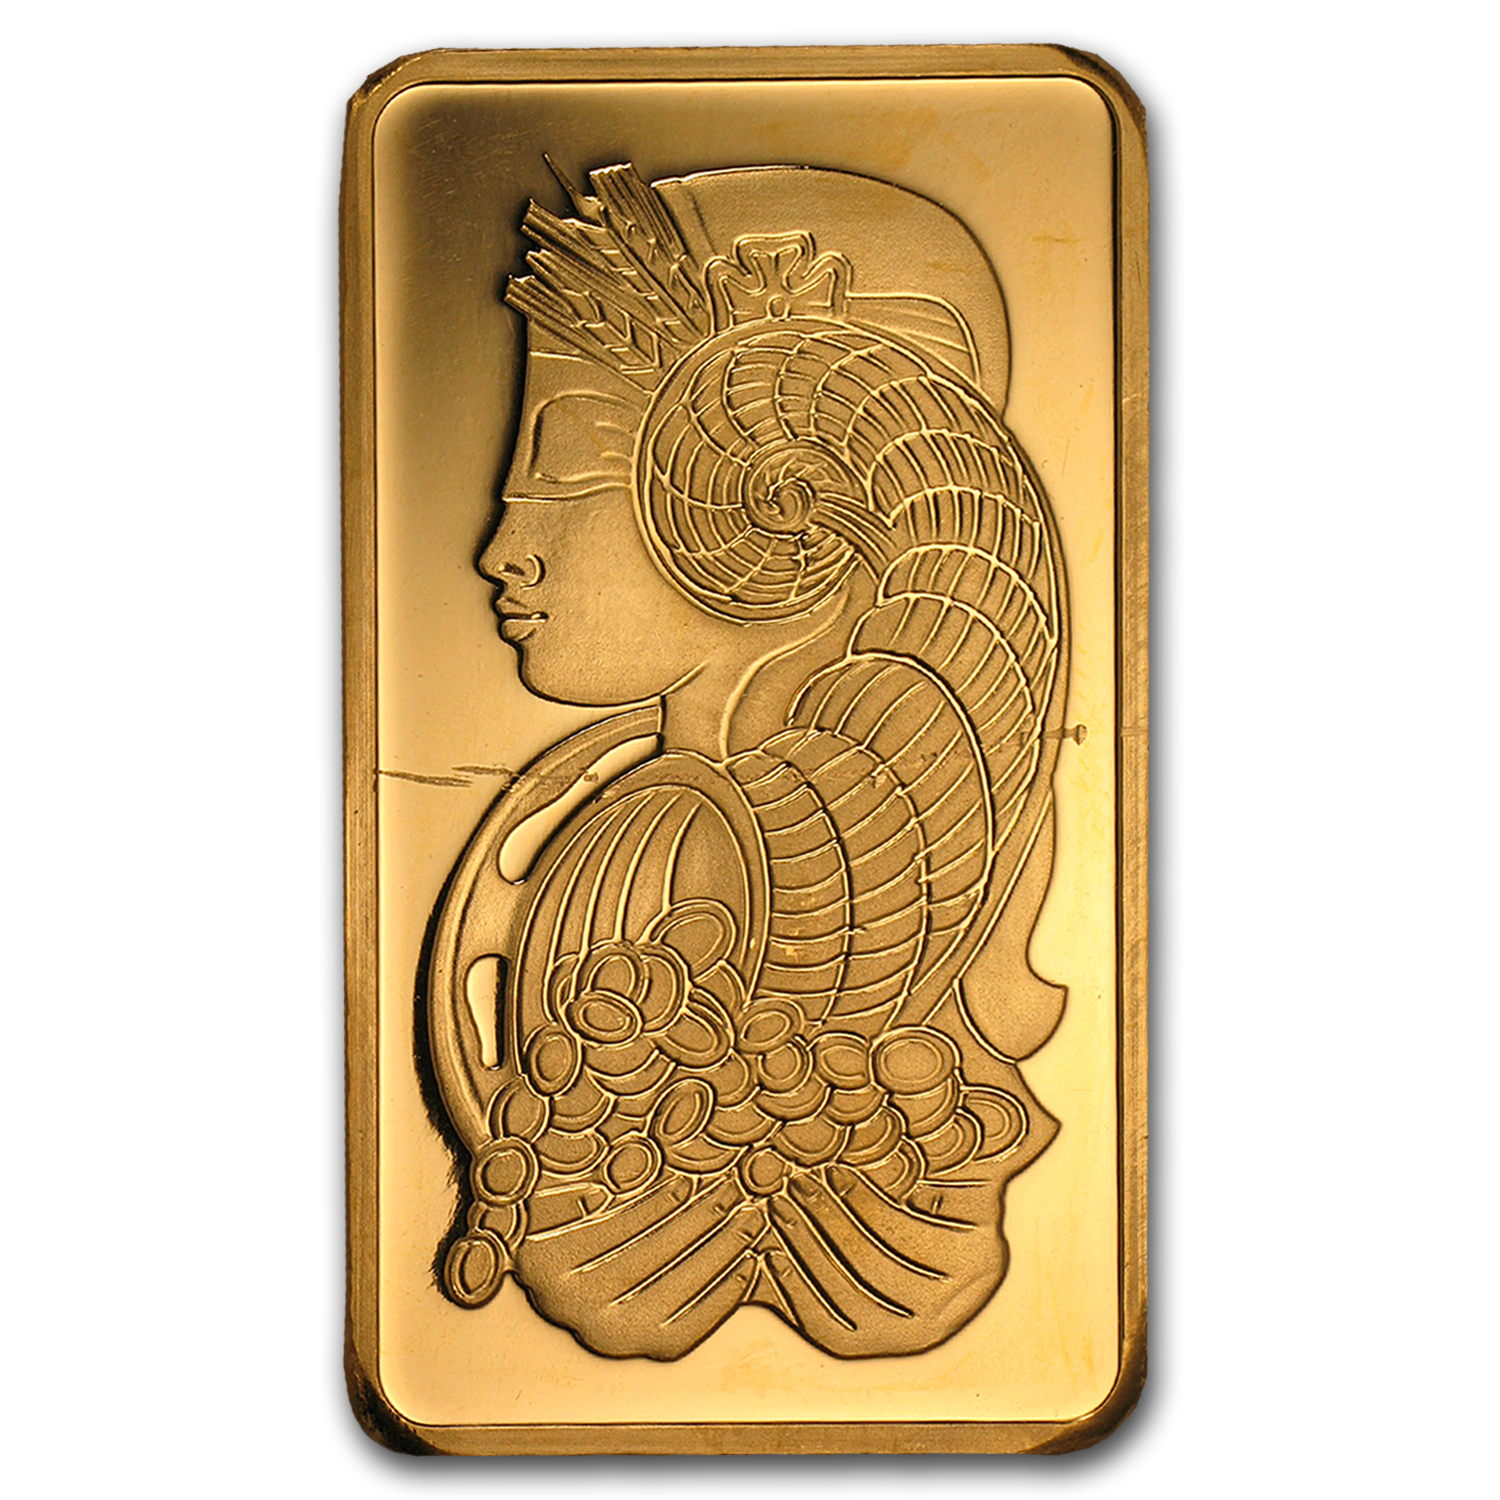 10 oz Gold Bar - Secondary Market